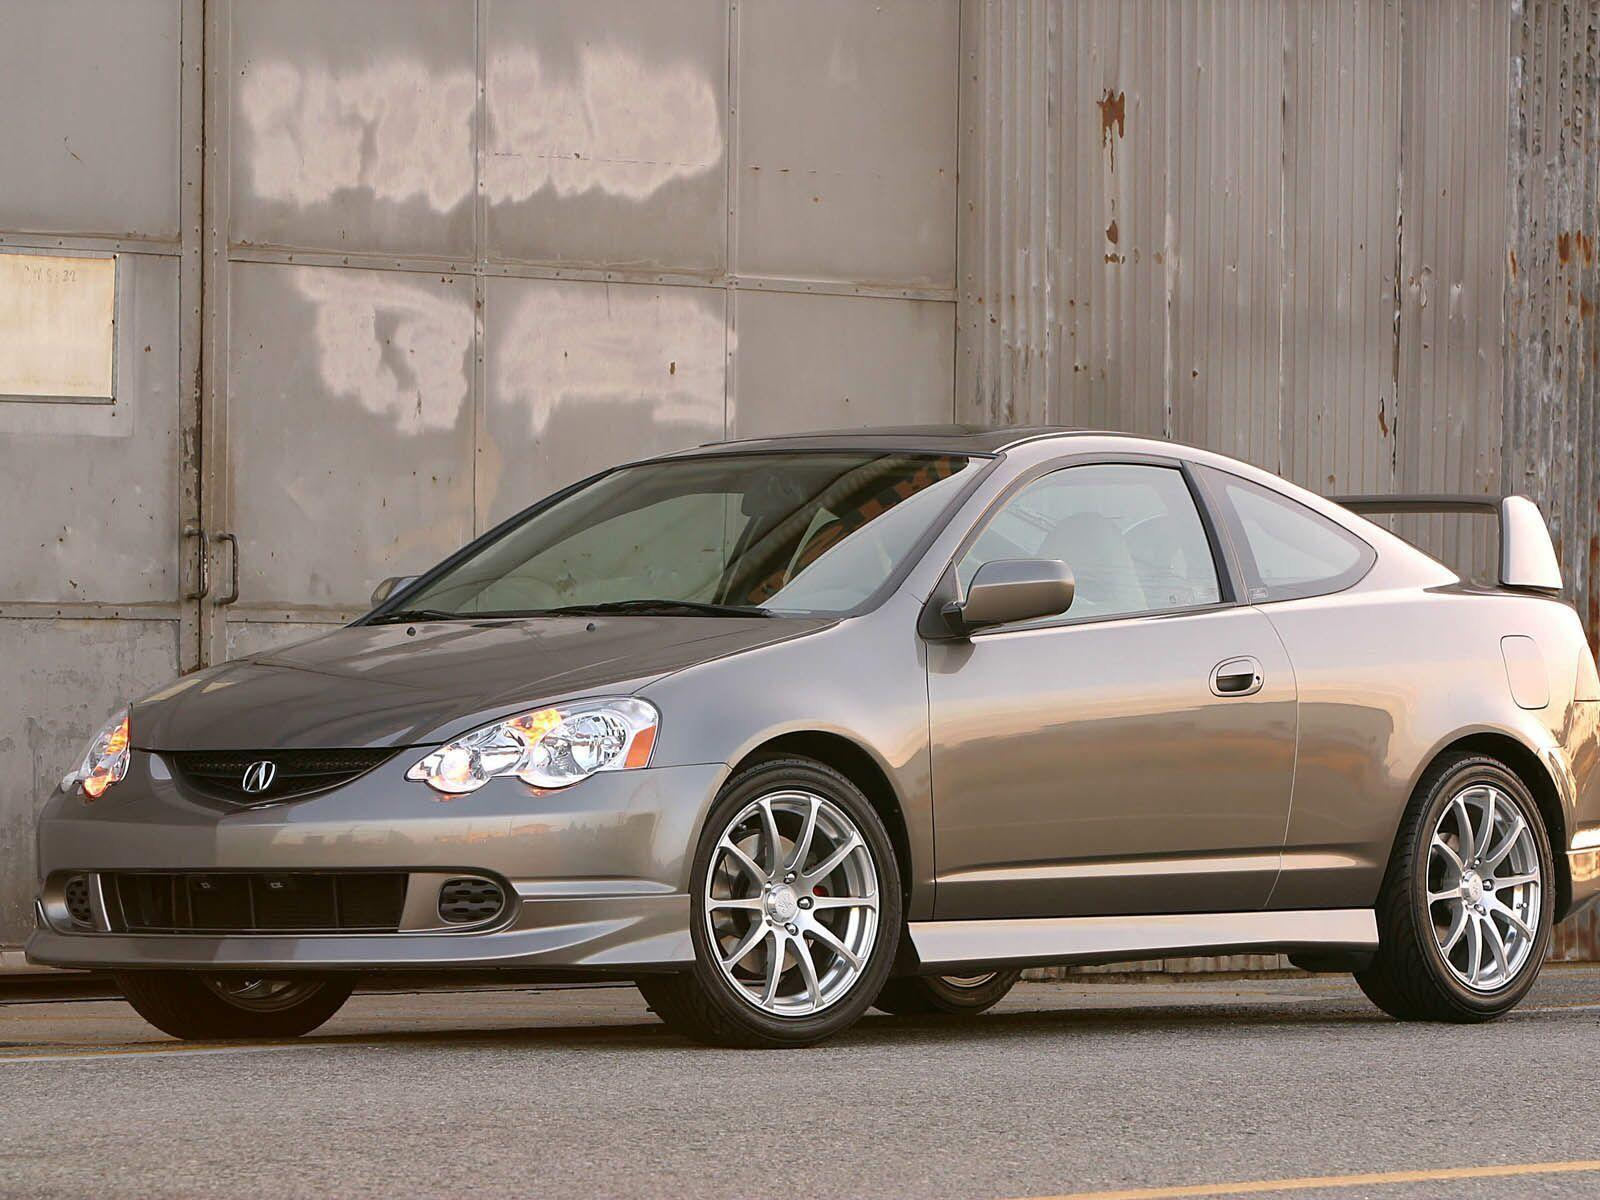 Download Acura Rsx Hd Background Wallpaper 43 HD Wallpapers Full Size